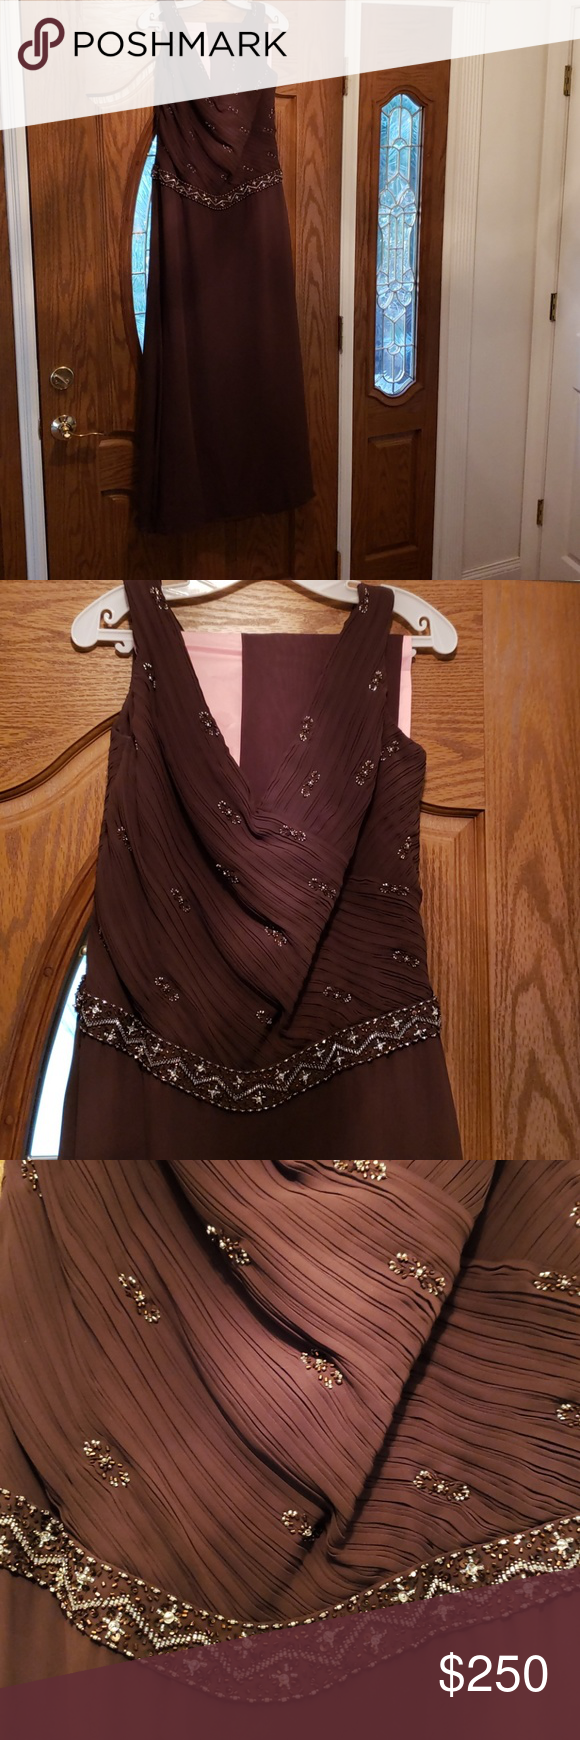 9669daf36c4 I just added this listing on Poshmark  Mother of the bride Gown.   shopmycloset